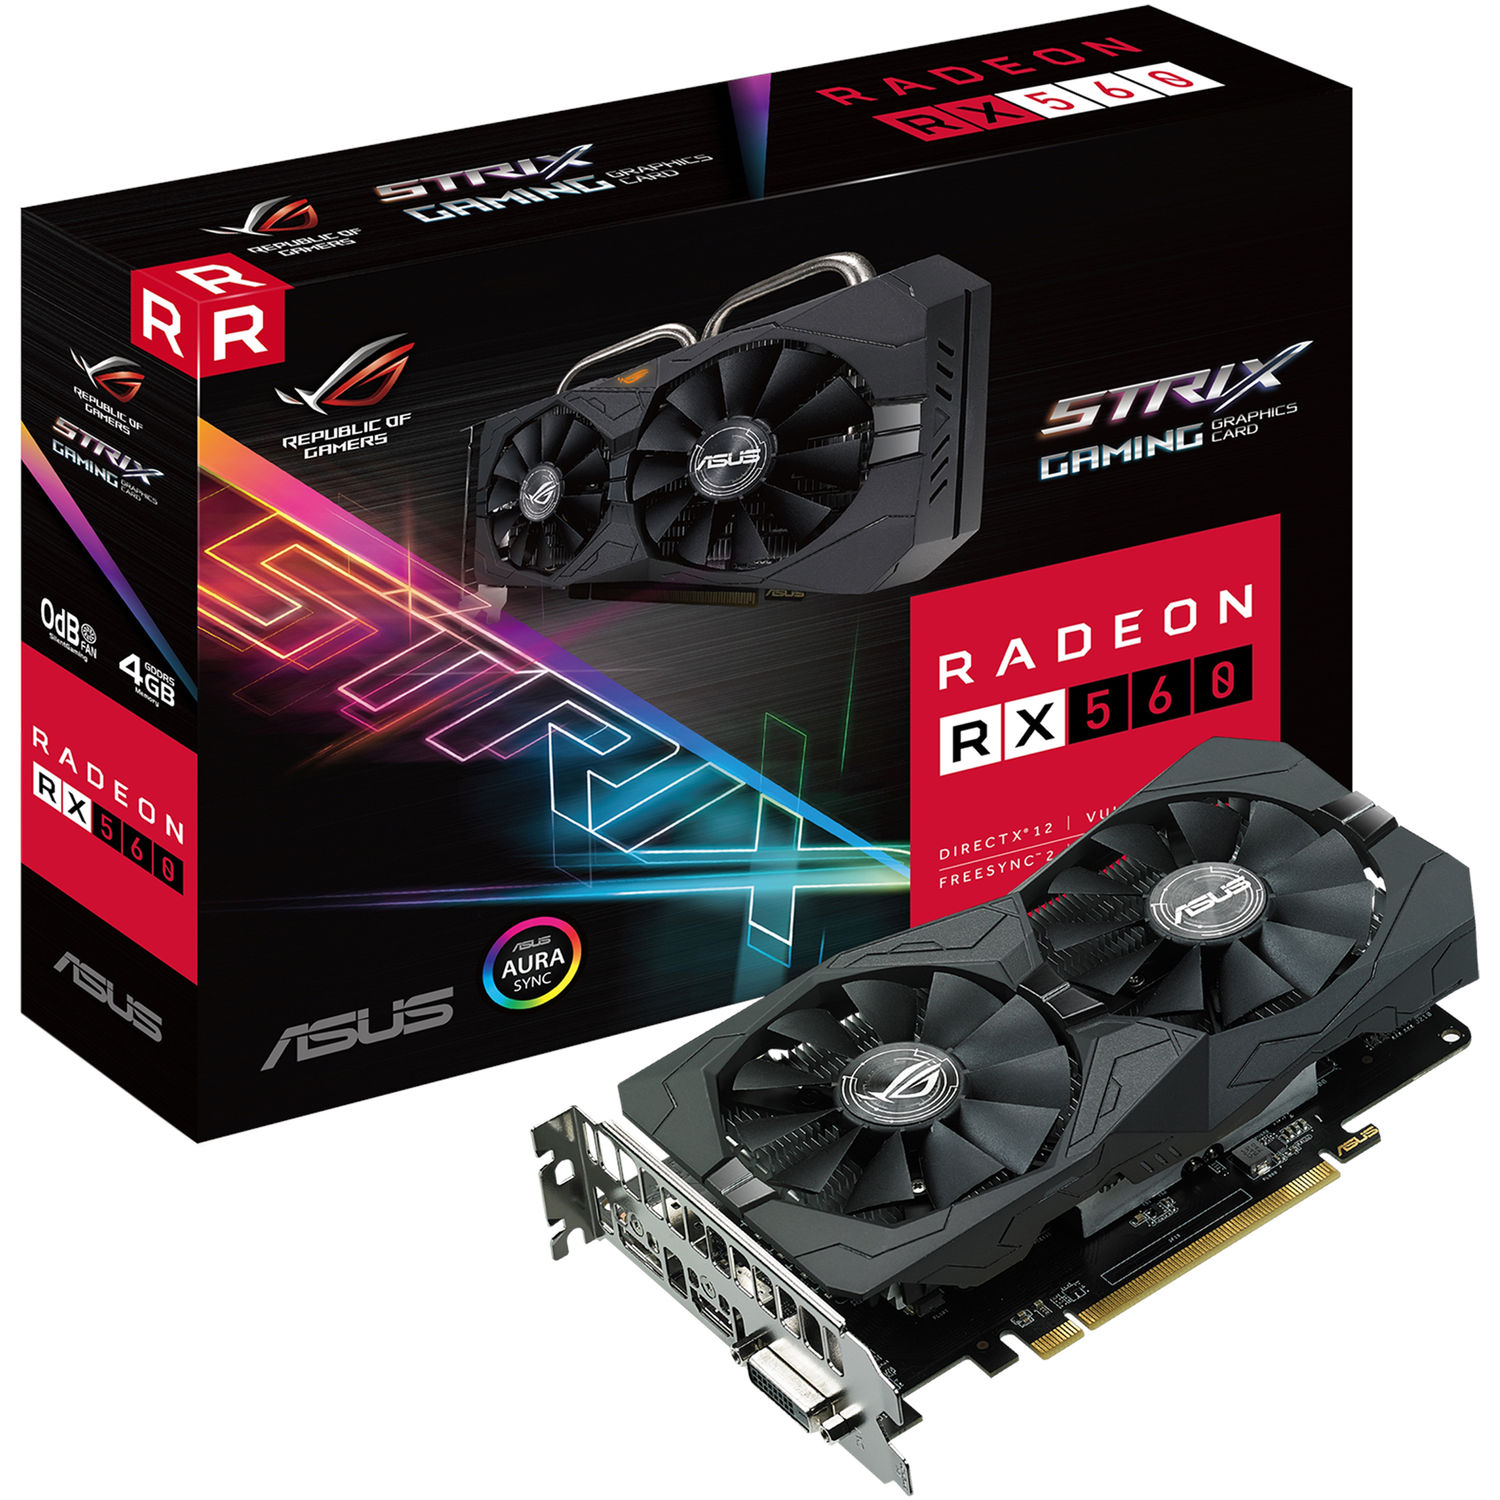 ASUS Republic of Gamers Strix Radeon RX 560 Gaming Graphics Card